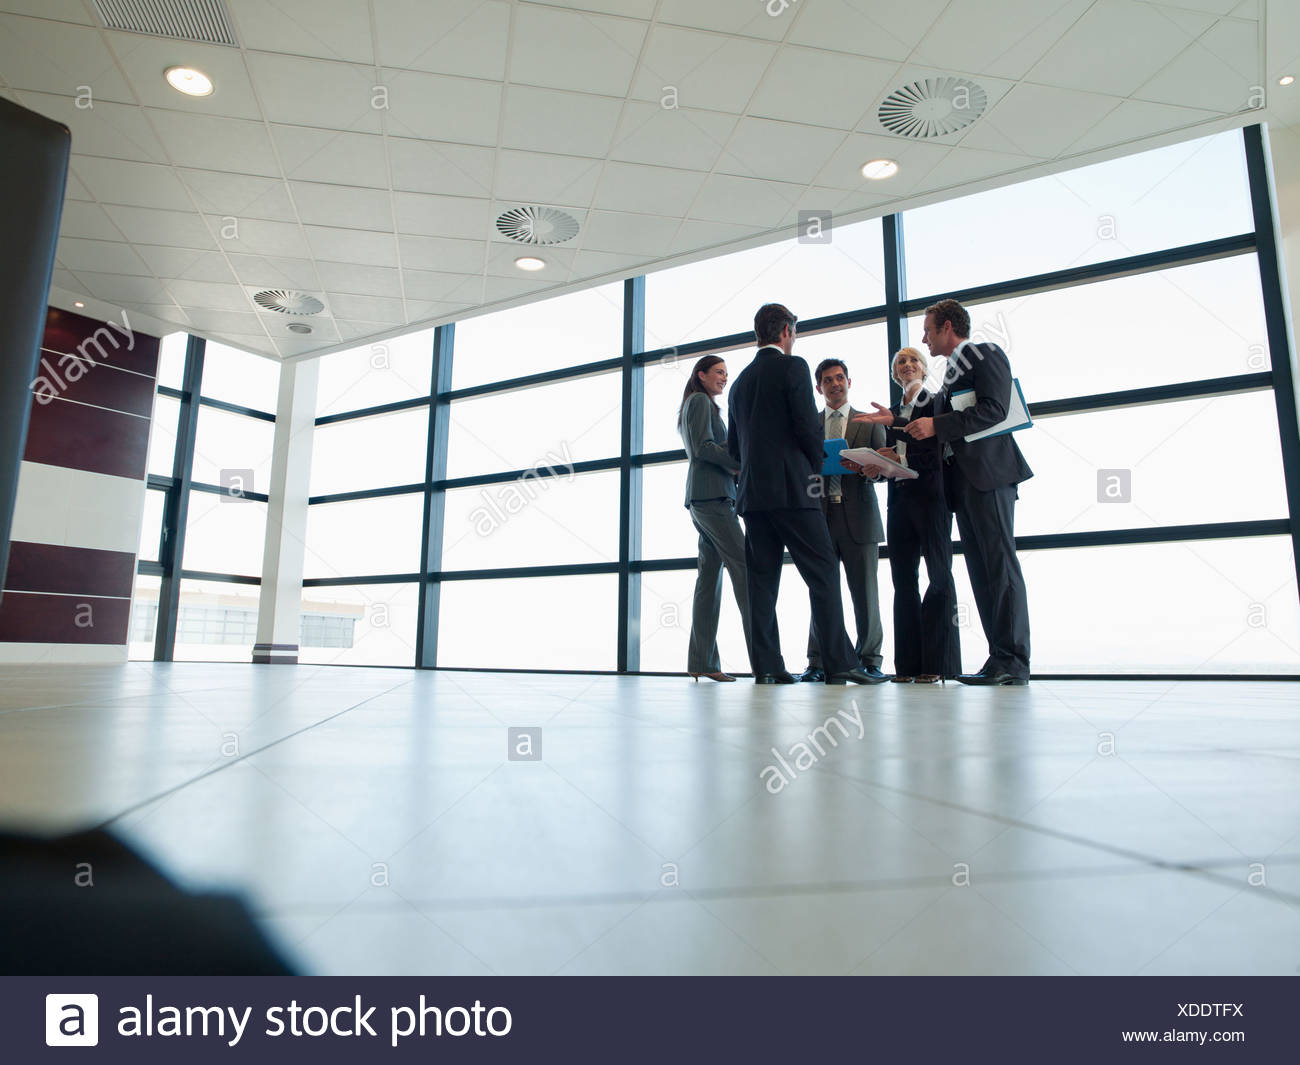 Business people talking in lobby - Stock Image